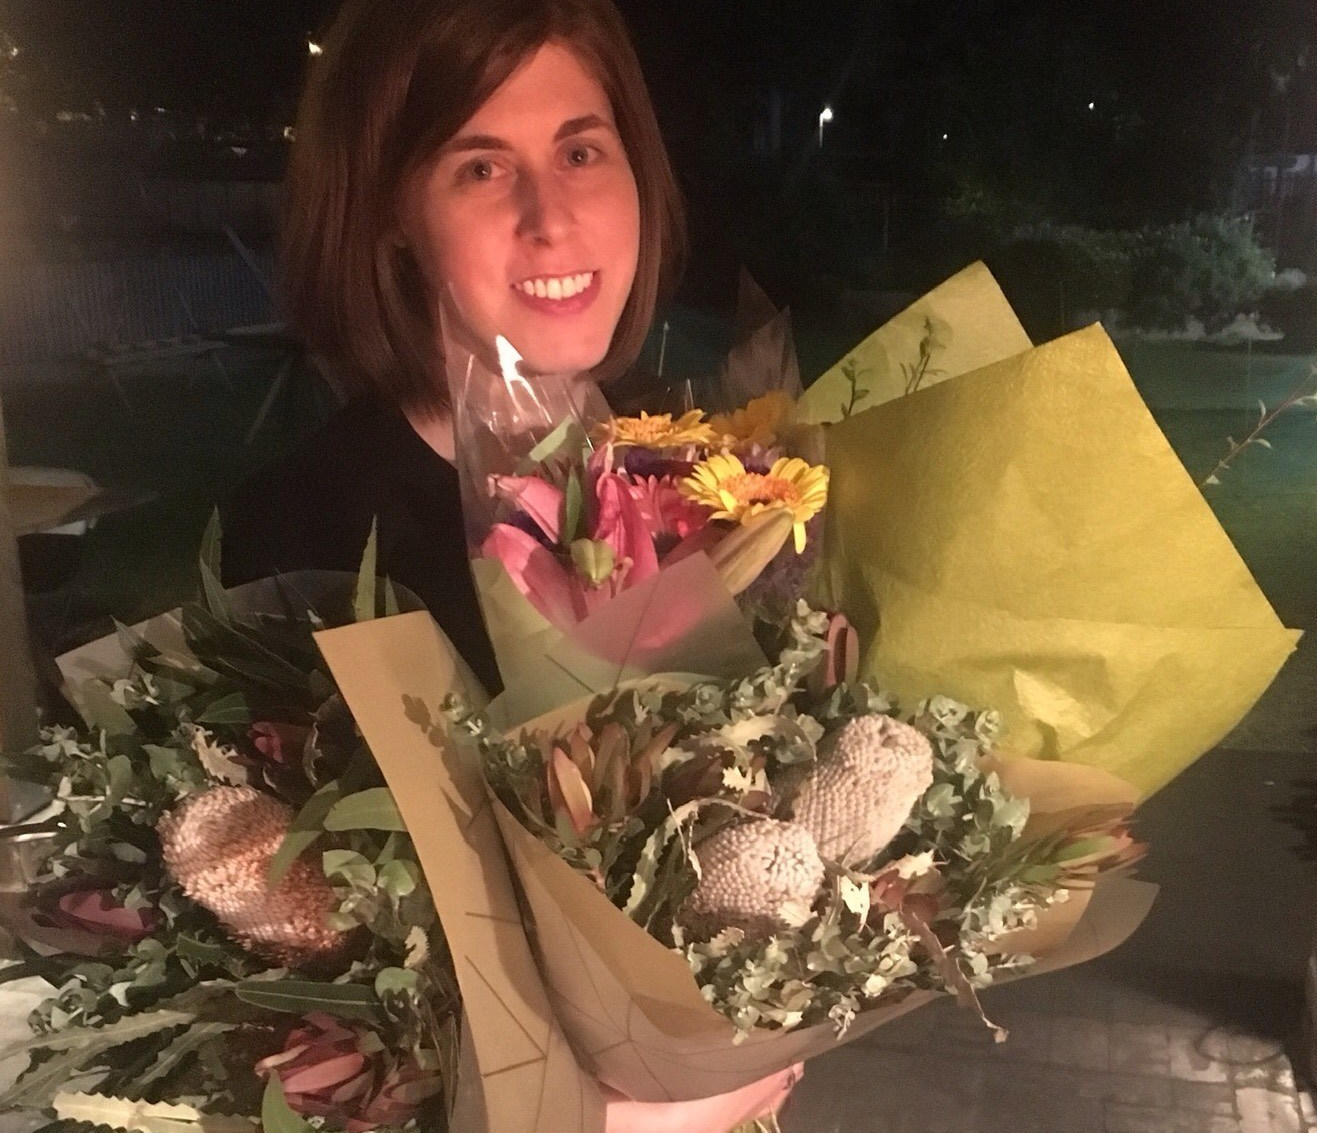 Author Ashley Kalagian Blunt at book launch with flowers